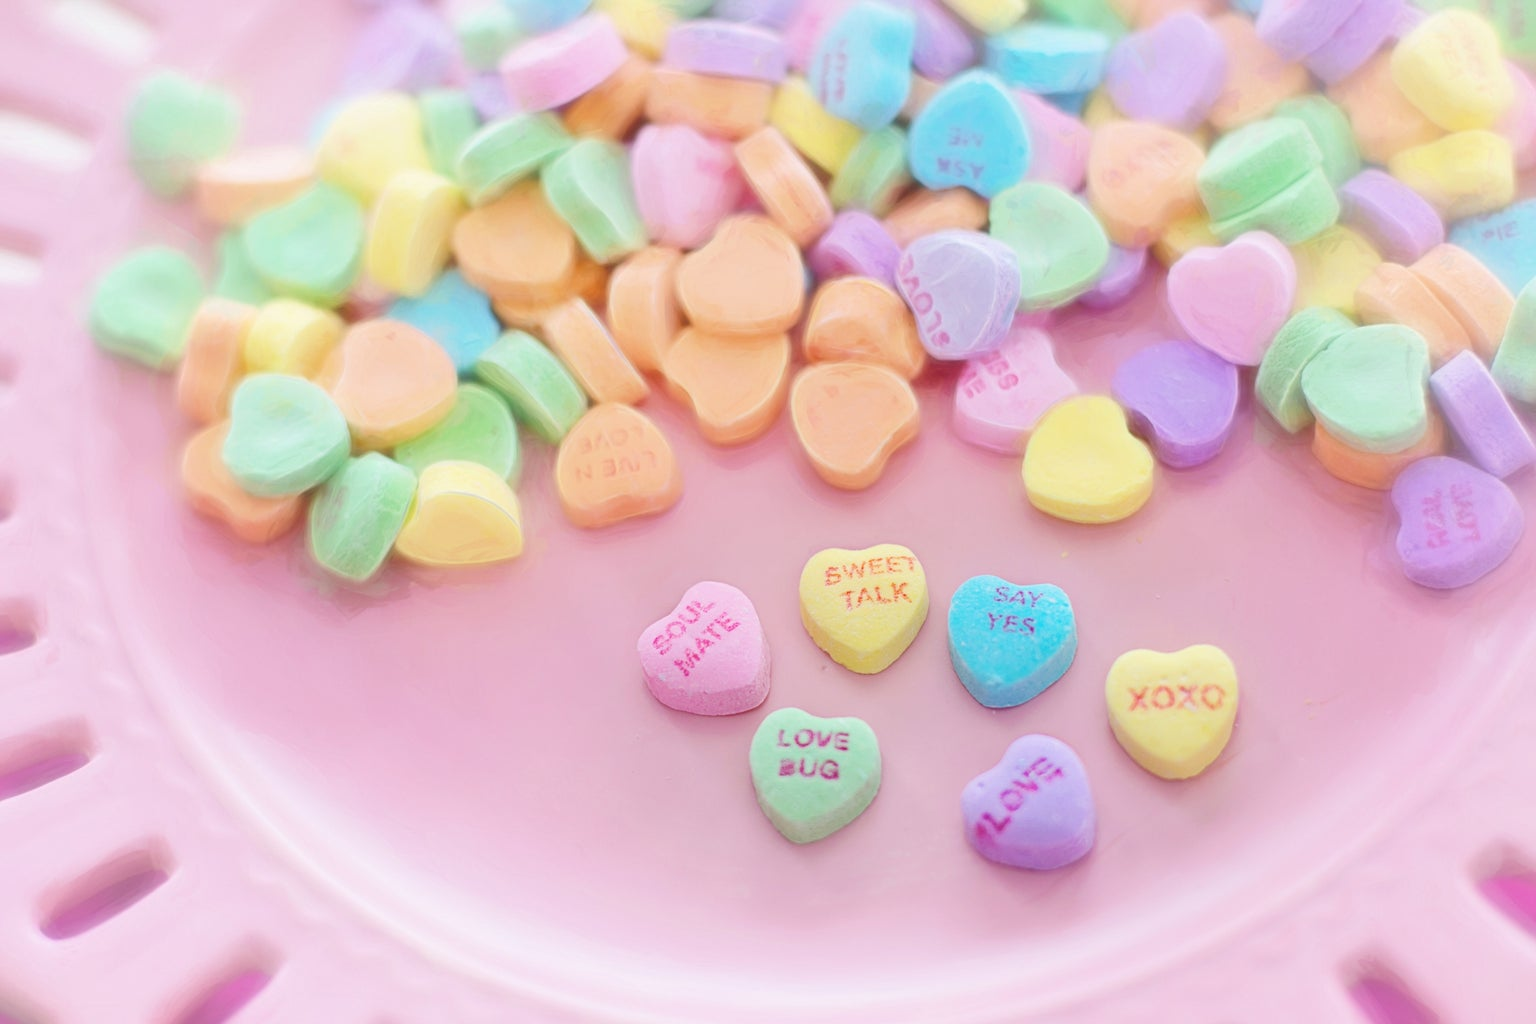 candy, hearts, valentines day, love, sweet